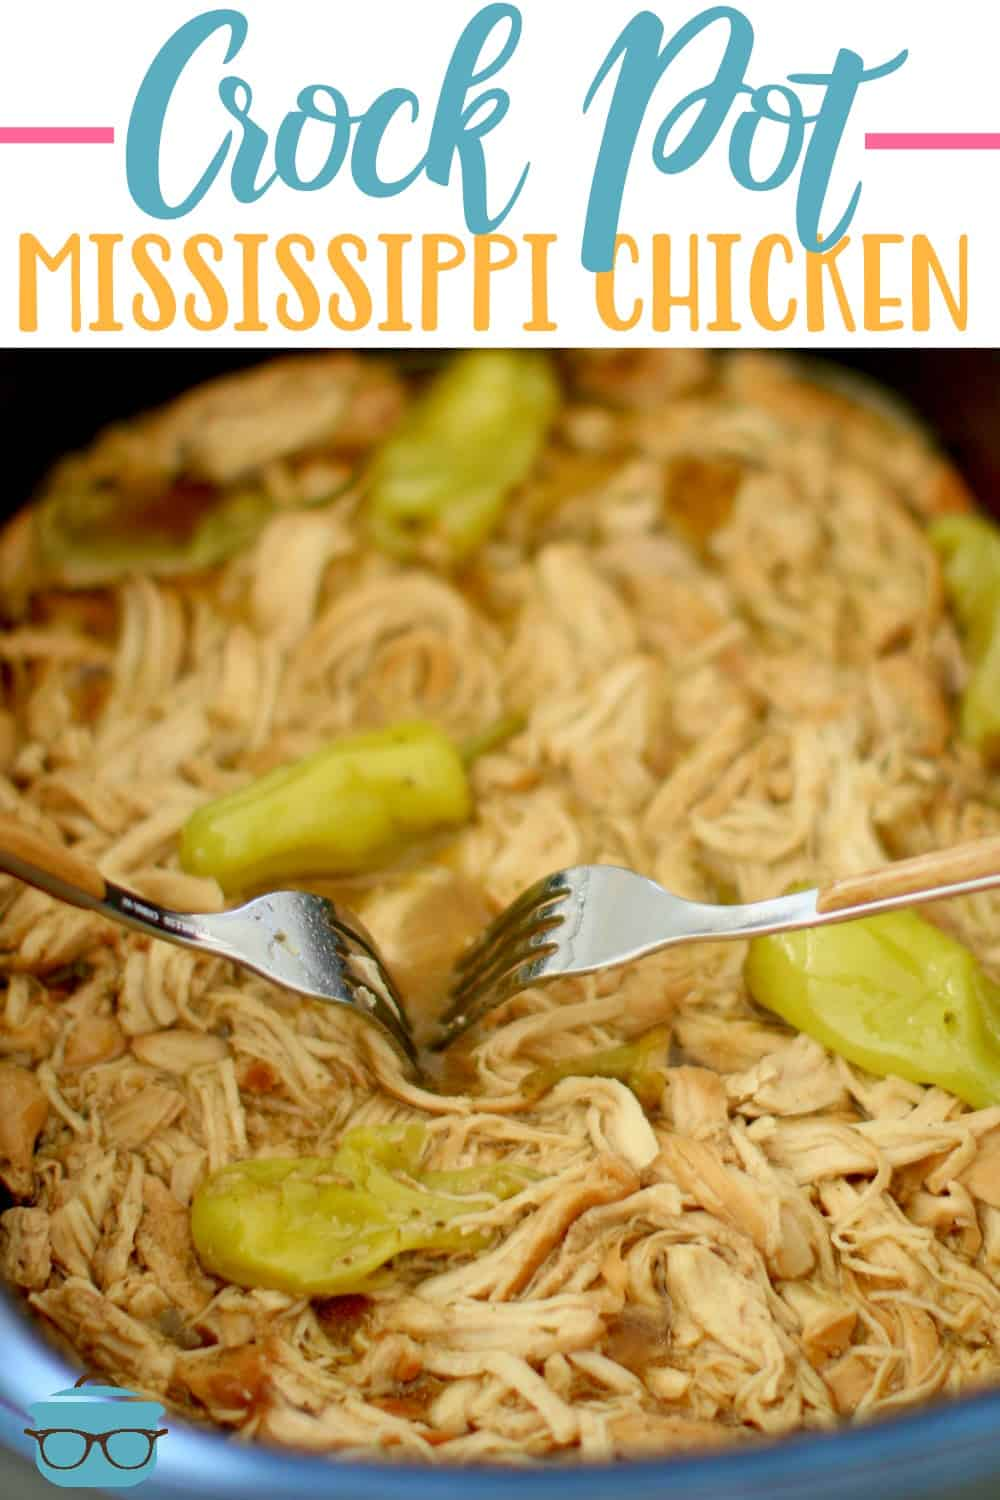 Crock Pot Mississippi Chicken is made with chicken breasts, au jus gravy, ranch dressing mix, butter and peperonicini peppers. Top with cheese. Heavenly! #mississippichicken #keto